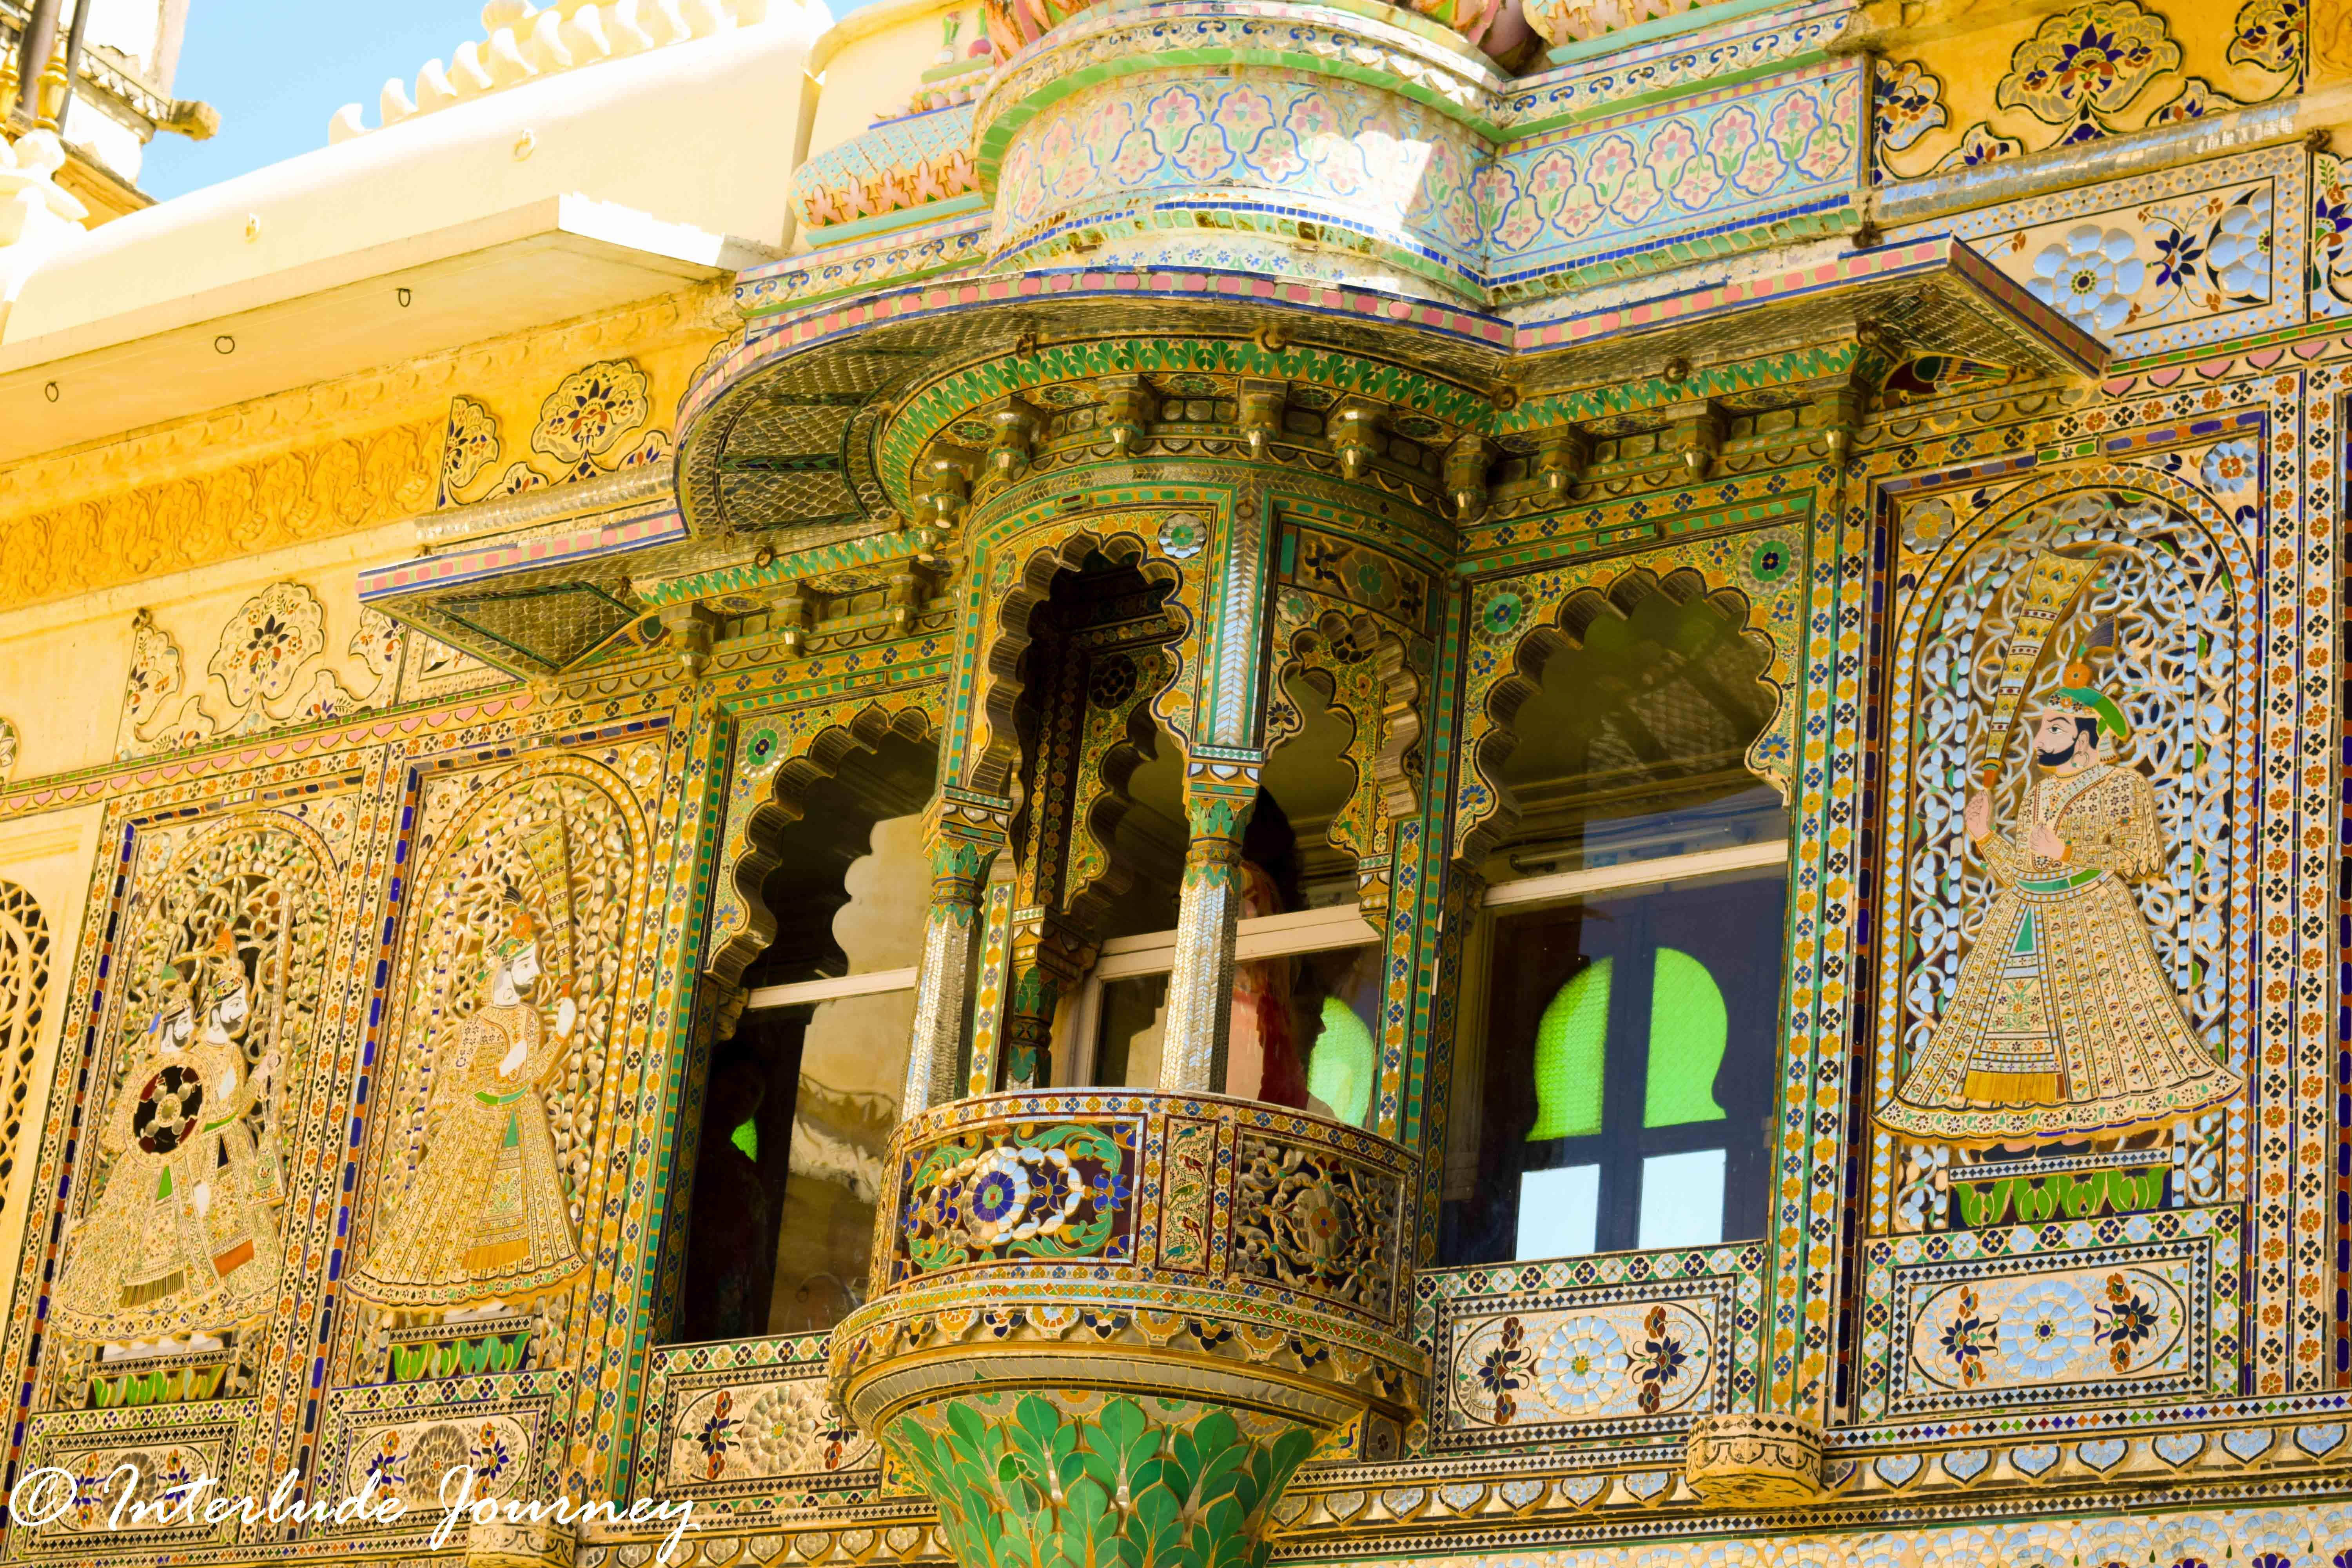 beautiful mirror and glass work in Mor-Chowk or Peacock Gallery at Udaipur City Palace